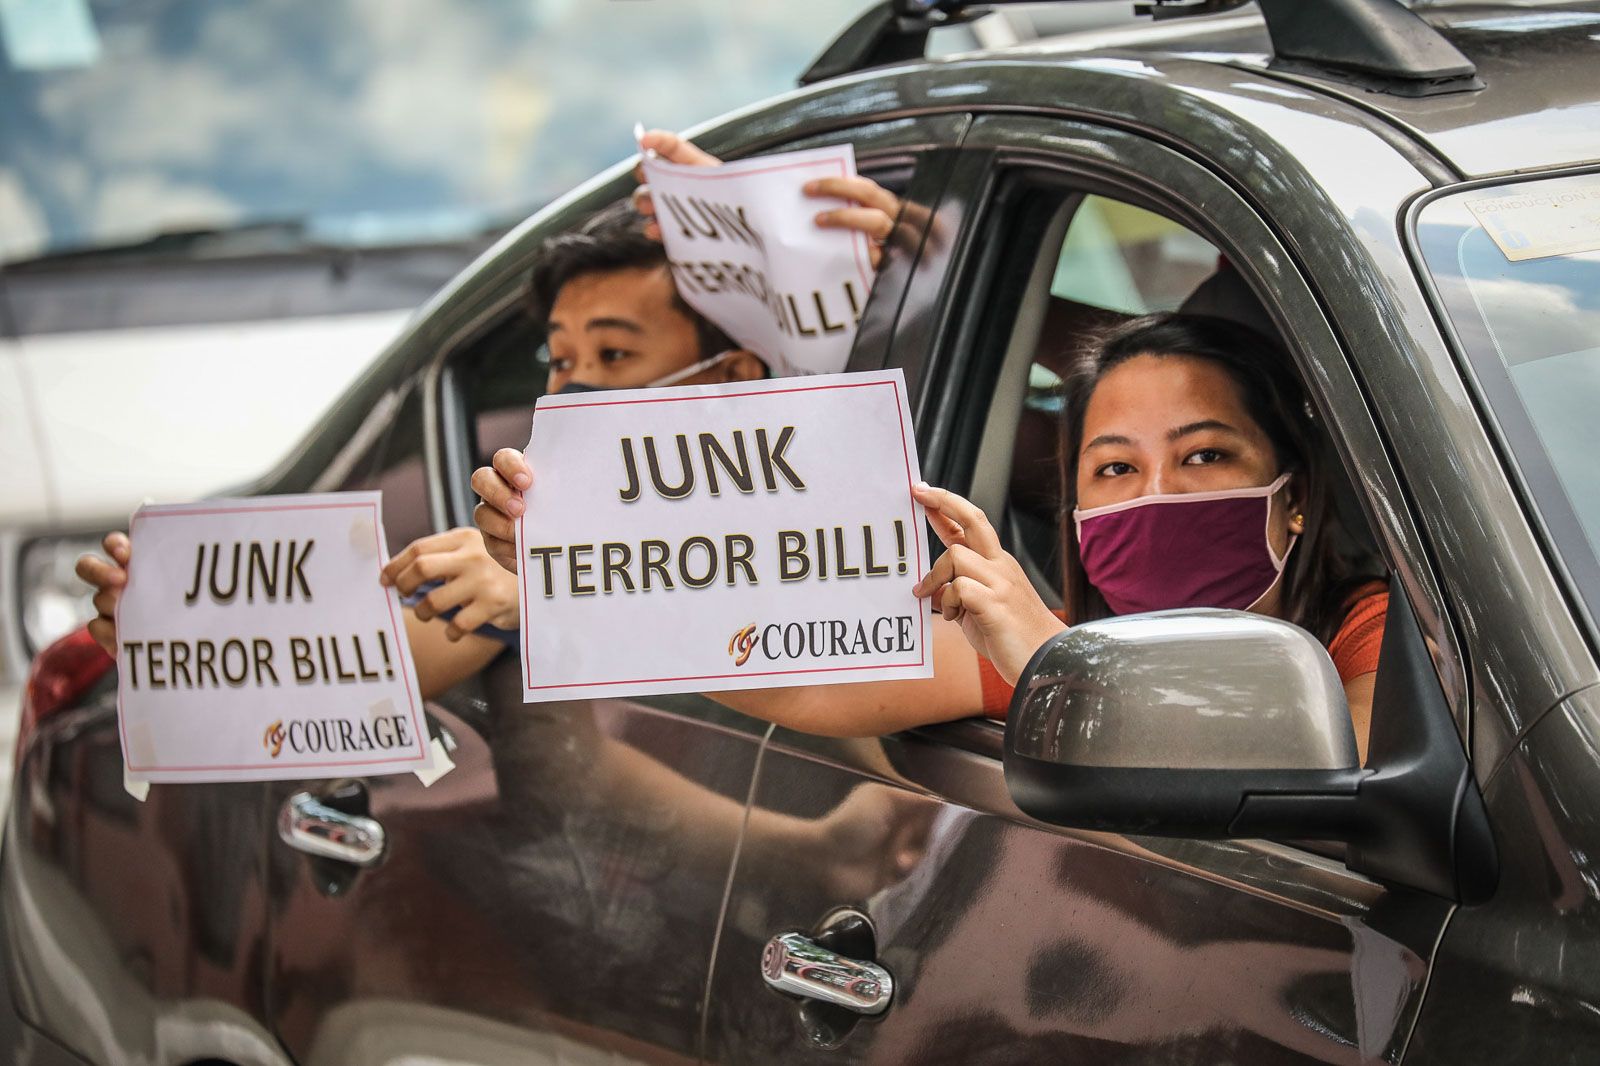 Carpio: Once a law, anti-terror bill can be questioned in court ...